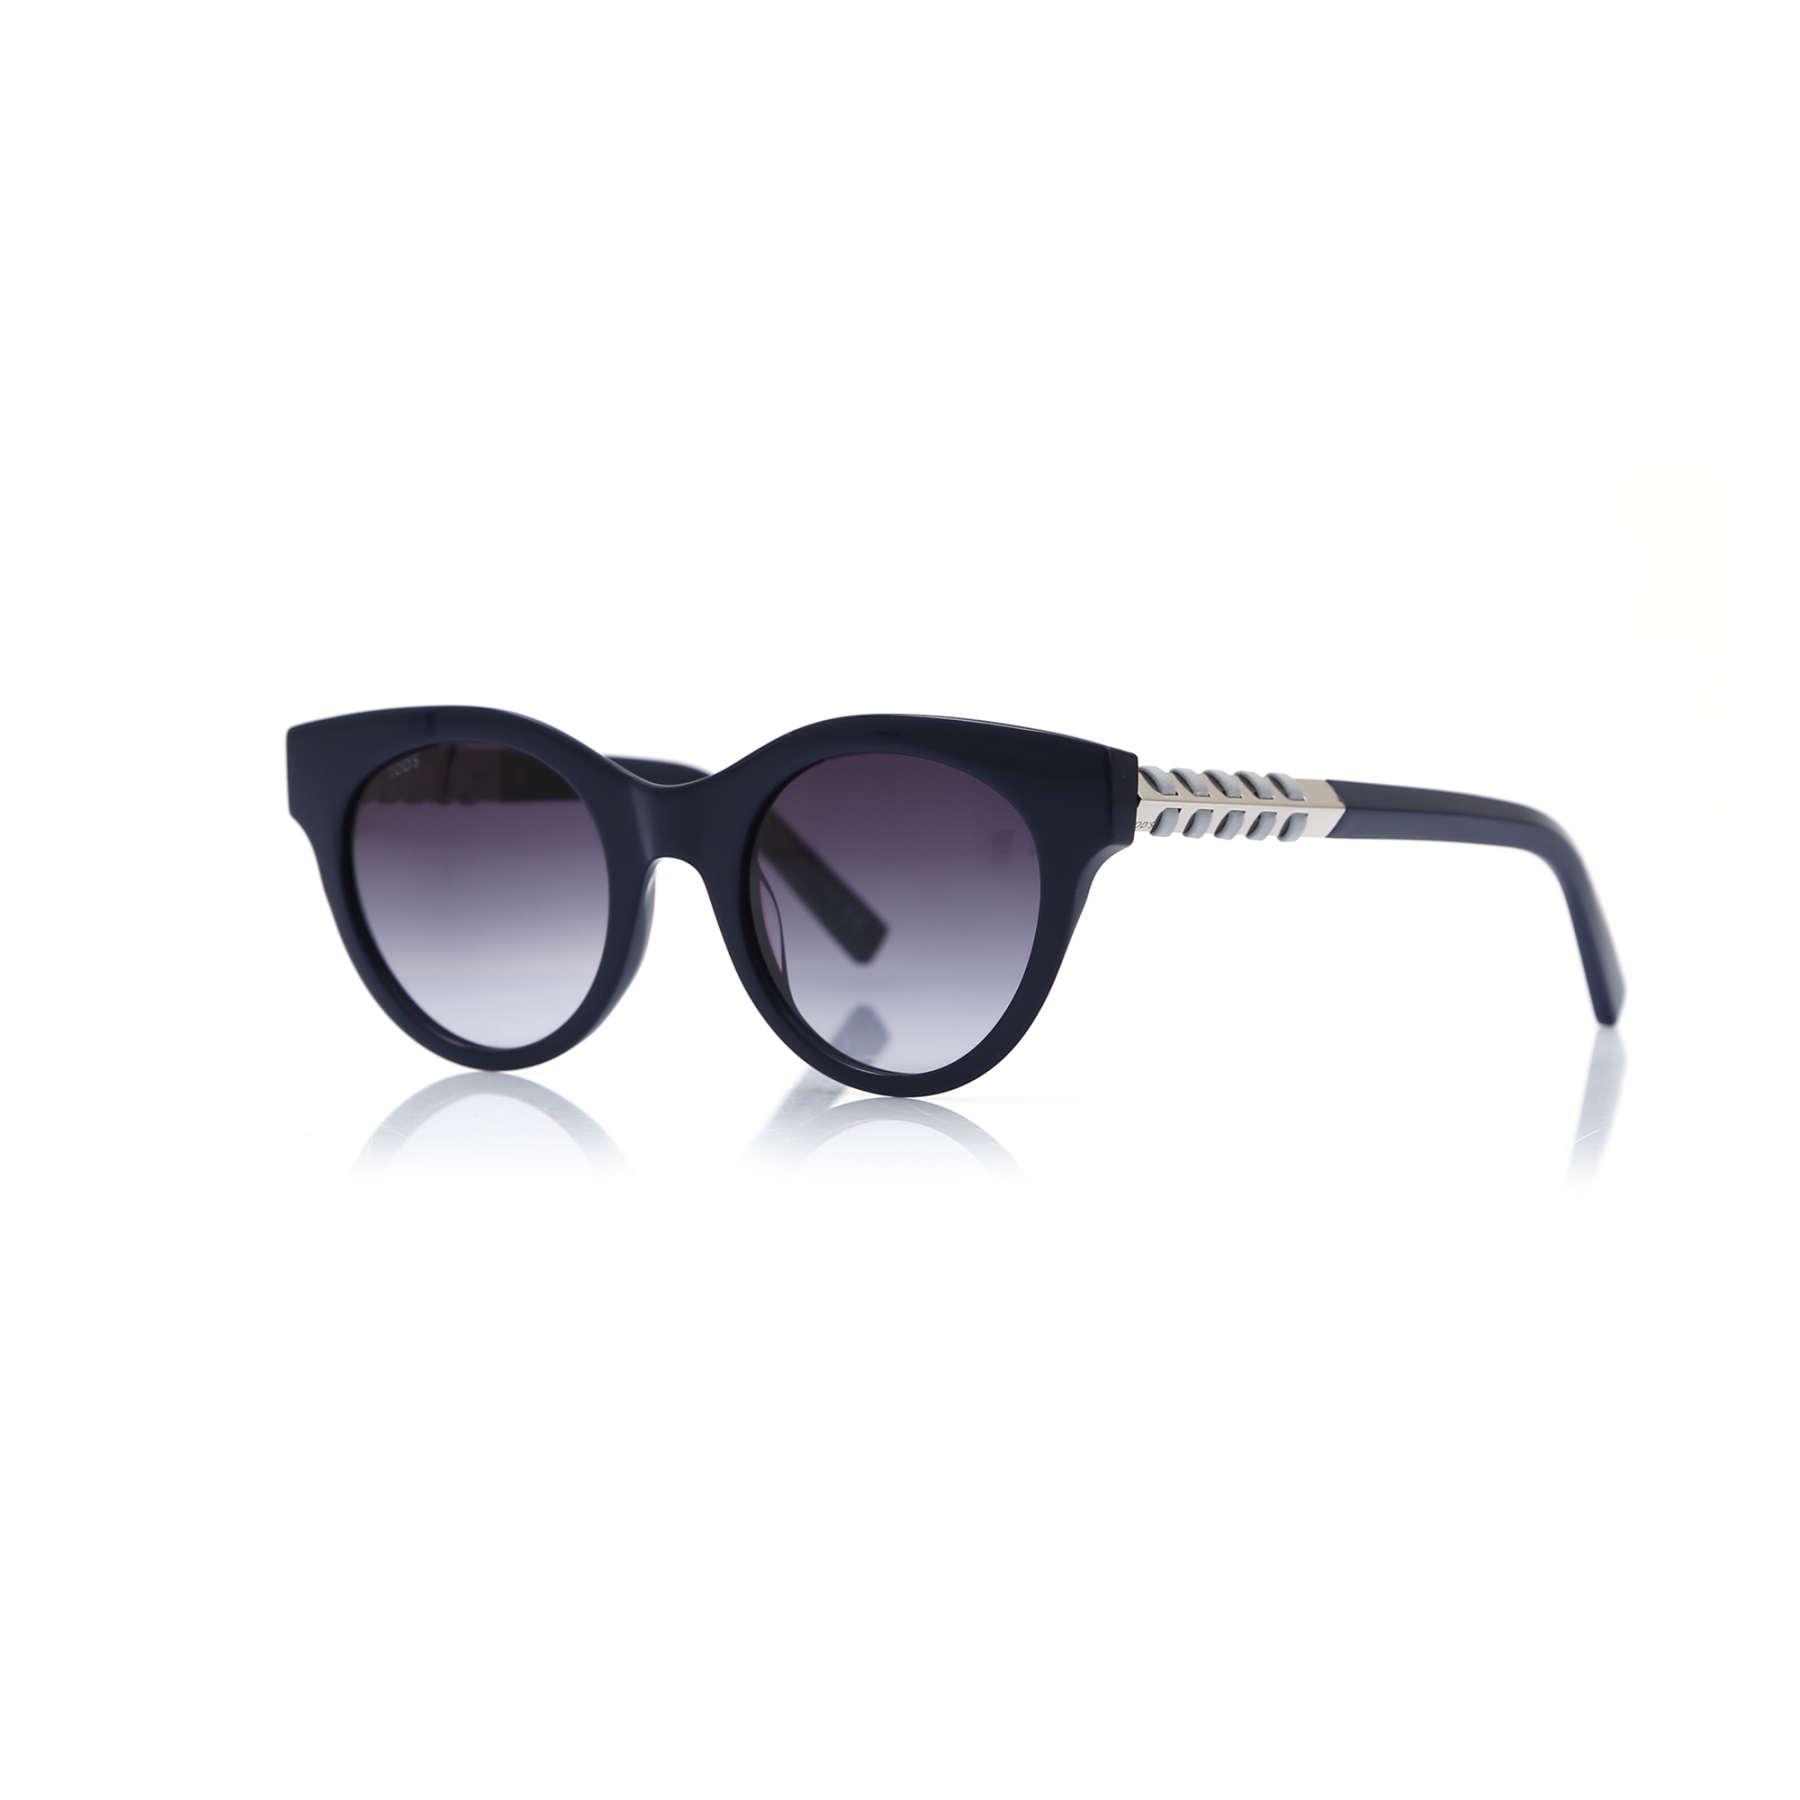 Women's sunglasses to 0201 90w bone navy blue organic oval aval 50-22-140 tods